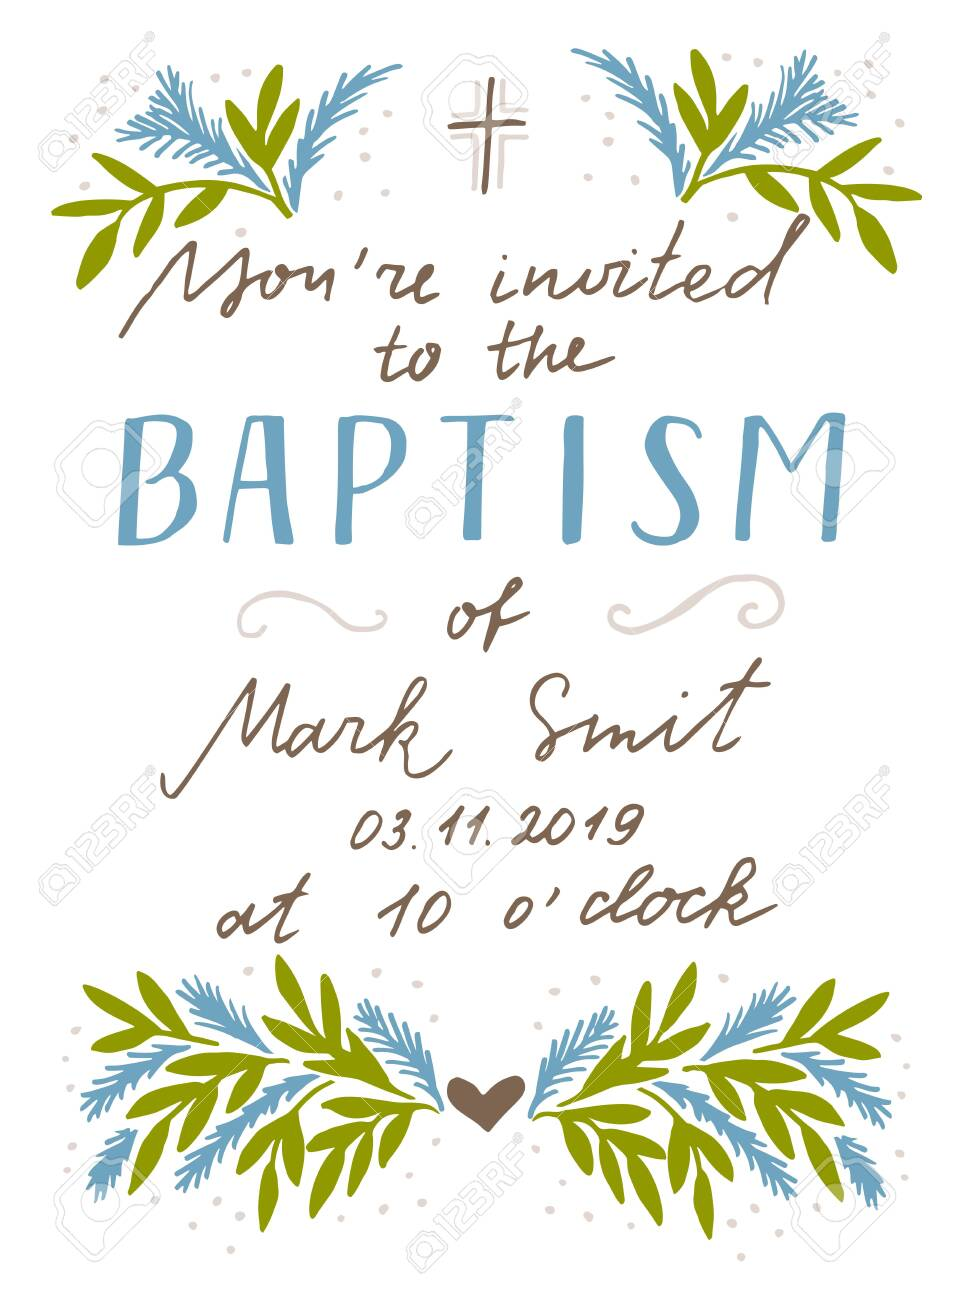 Christian Hand Lettering Quotes Baptism Biblical Background Royalty Free Cliparts Vectors And Stock Illustration Image 137431012